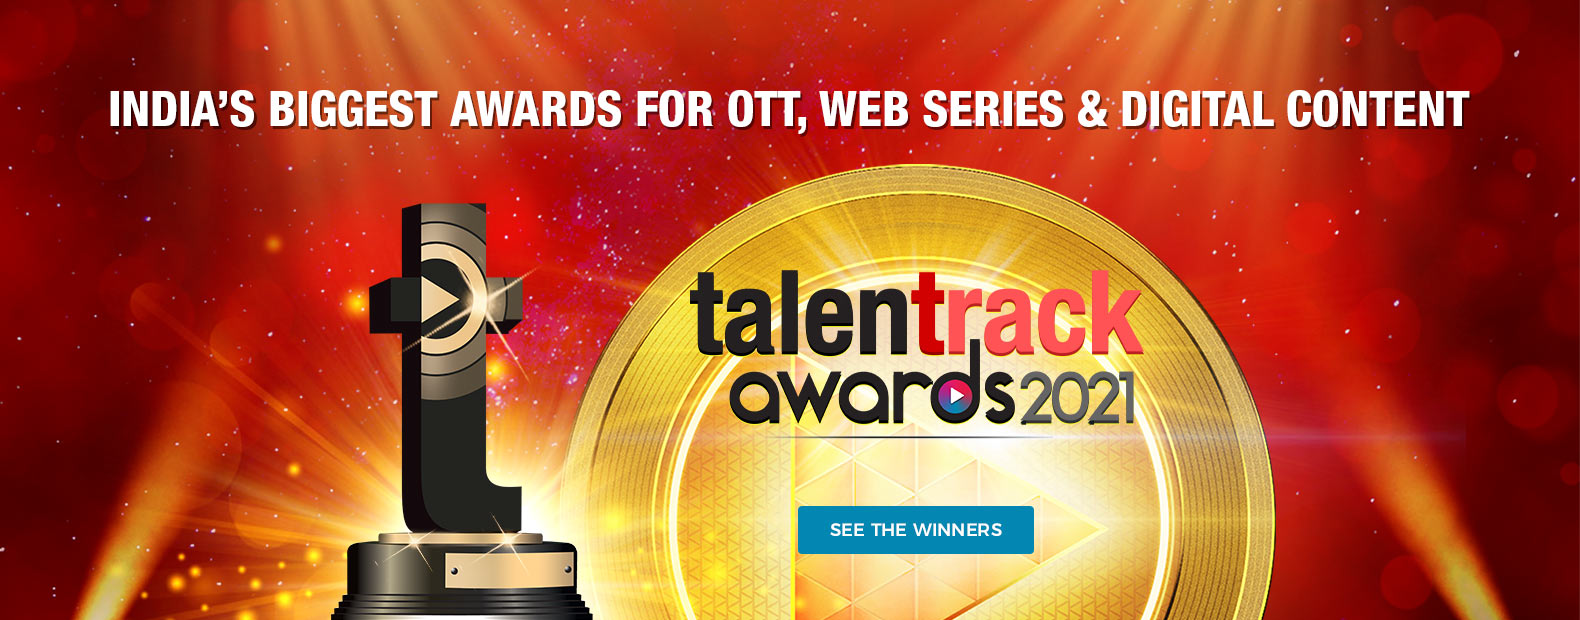 talentrack awards 2021, SEE THE WINNERS